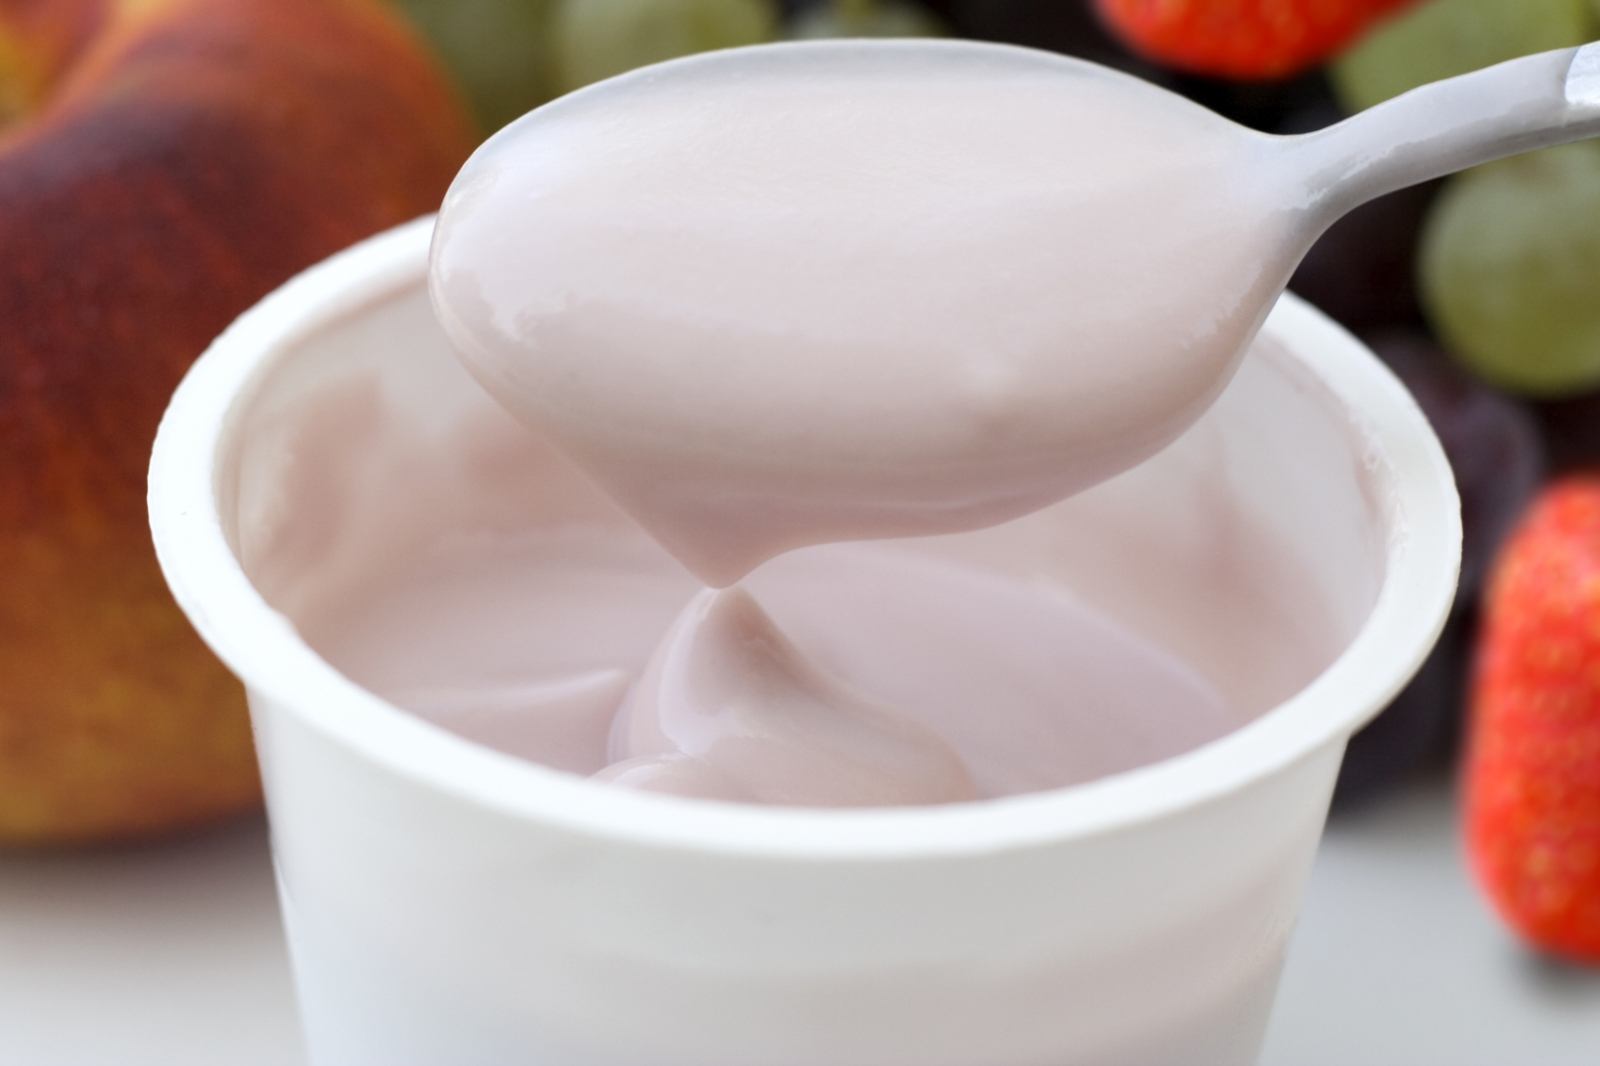 Fruit yoghurt with spoon